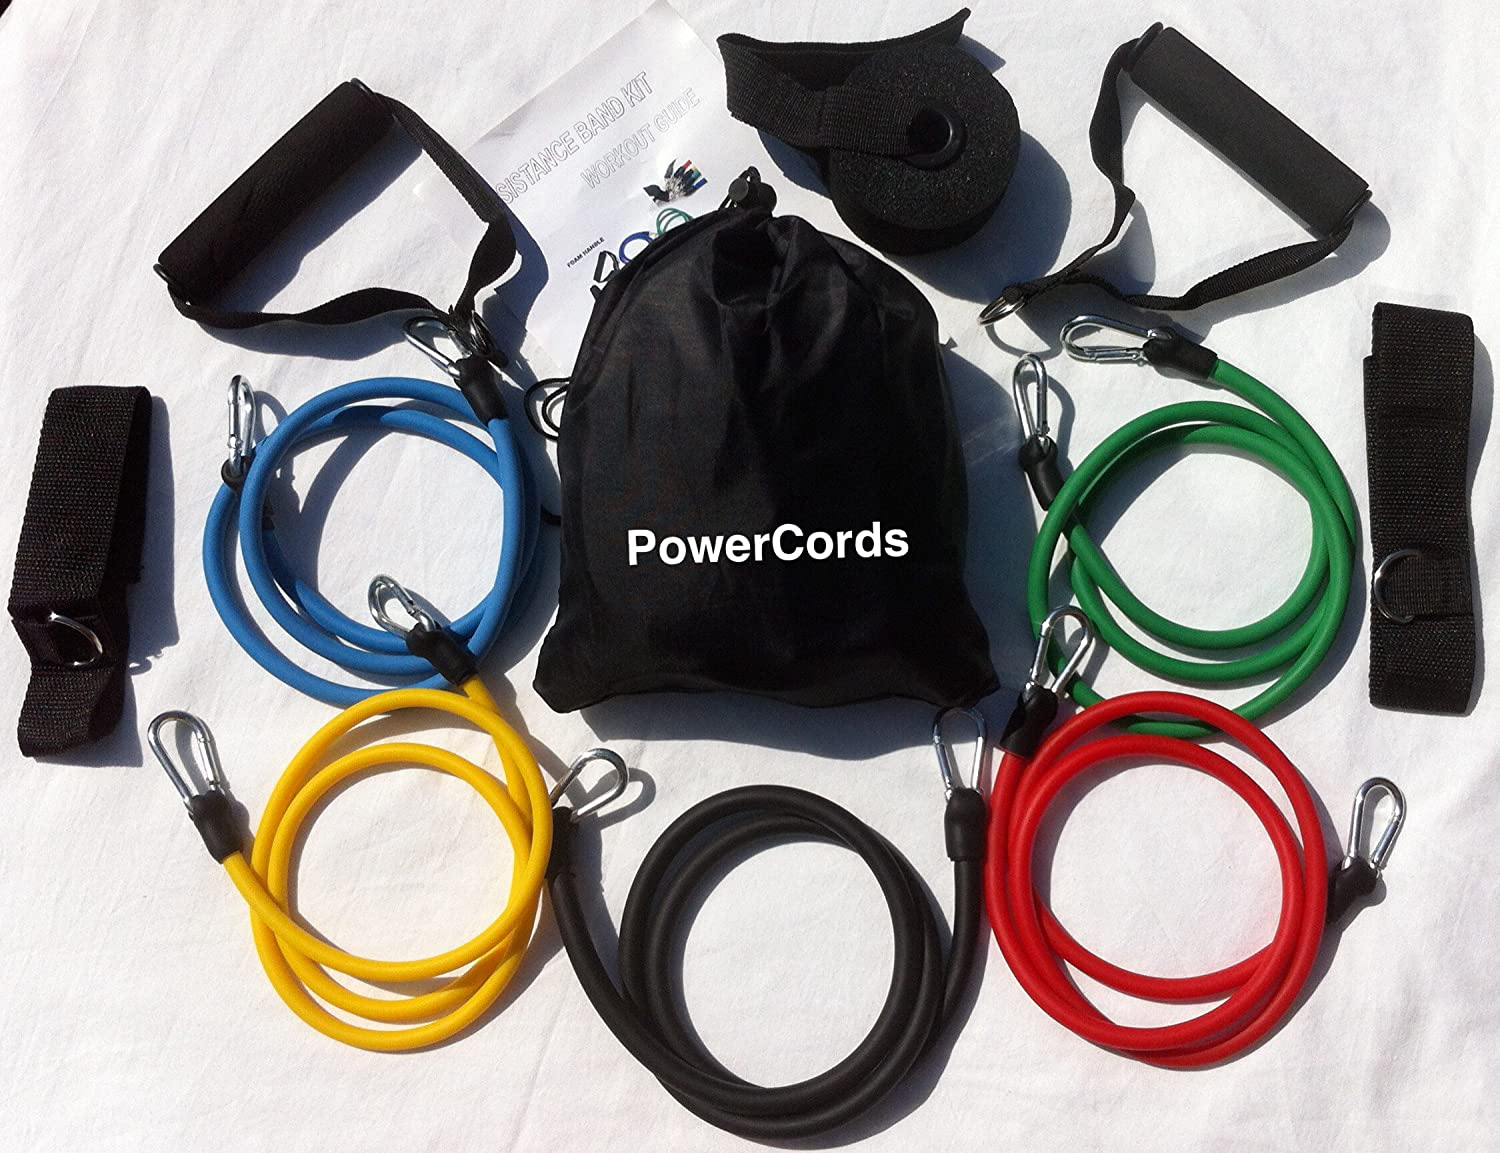 100% NATURAL LATEX TUBES, Columbia-Bookfest®Power Cords Resistance Bands 11pc Set, Ideal For Home Fitness, Yoga, Pilates, Abs, P90x & Workout with workout guide. Part of the Columbia-Bookfest® PowerCord products. Yongkang Youngho PC11